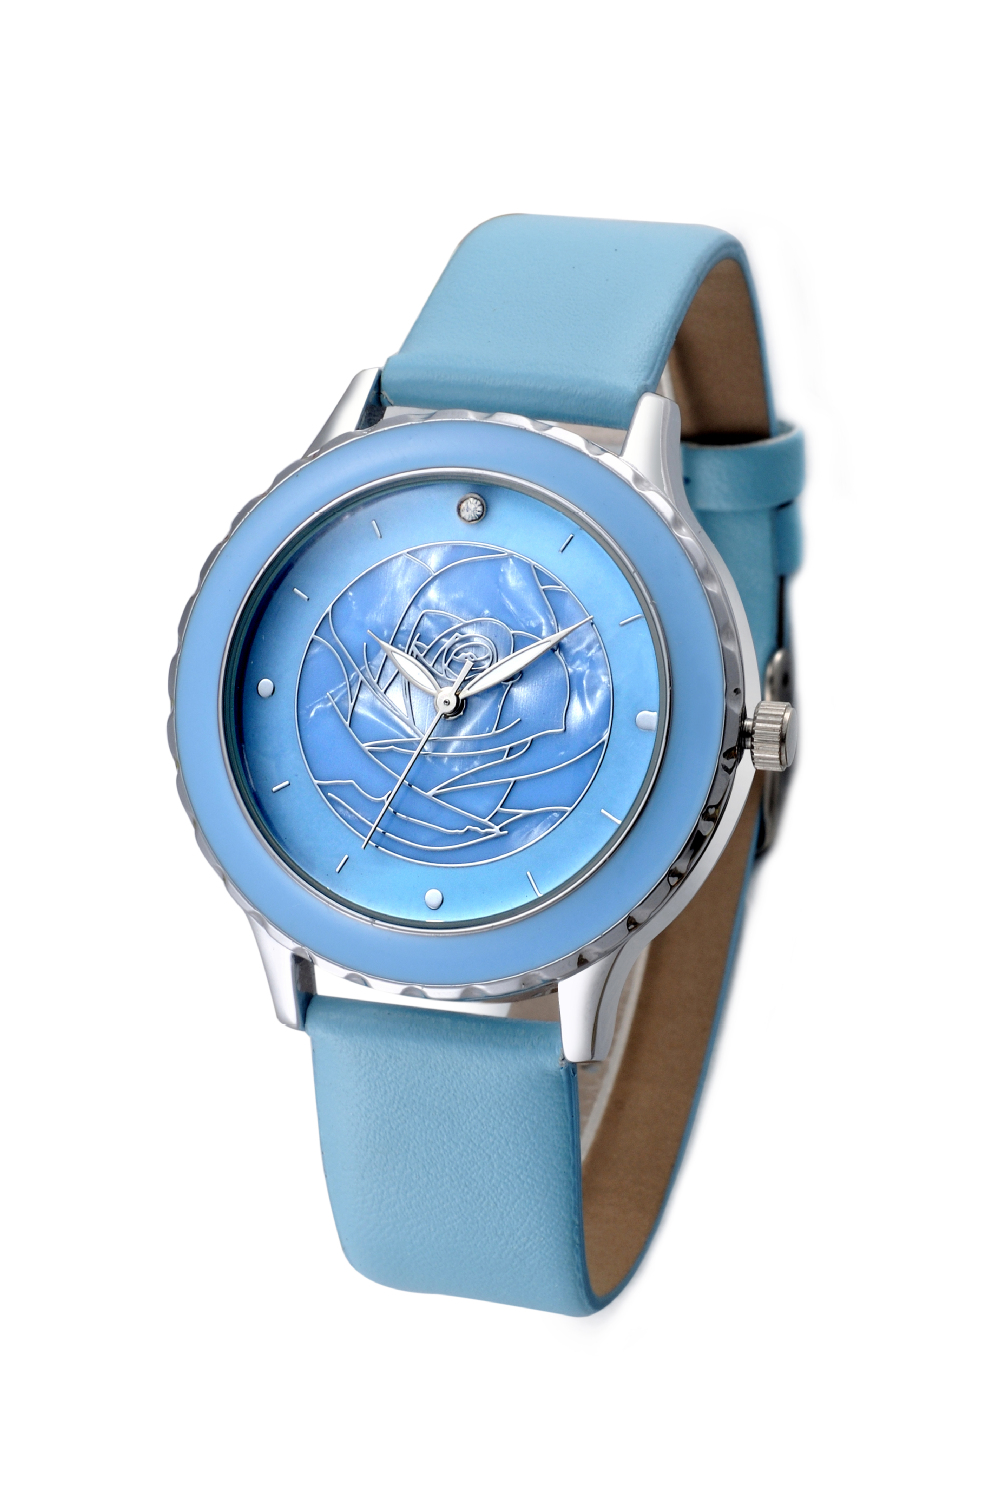 2015 new arrival women watch, japan movement sexy lady elegant quartz watch